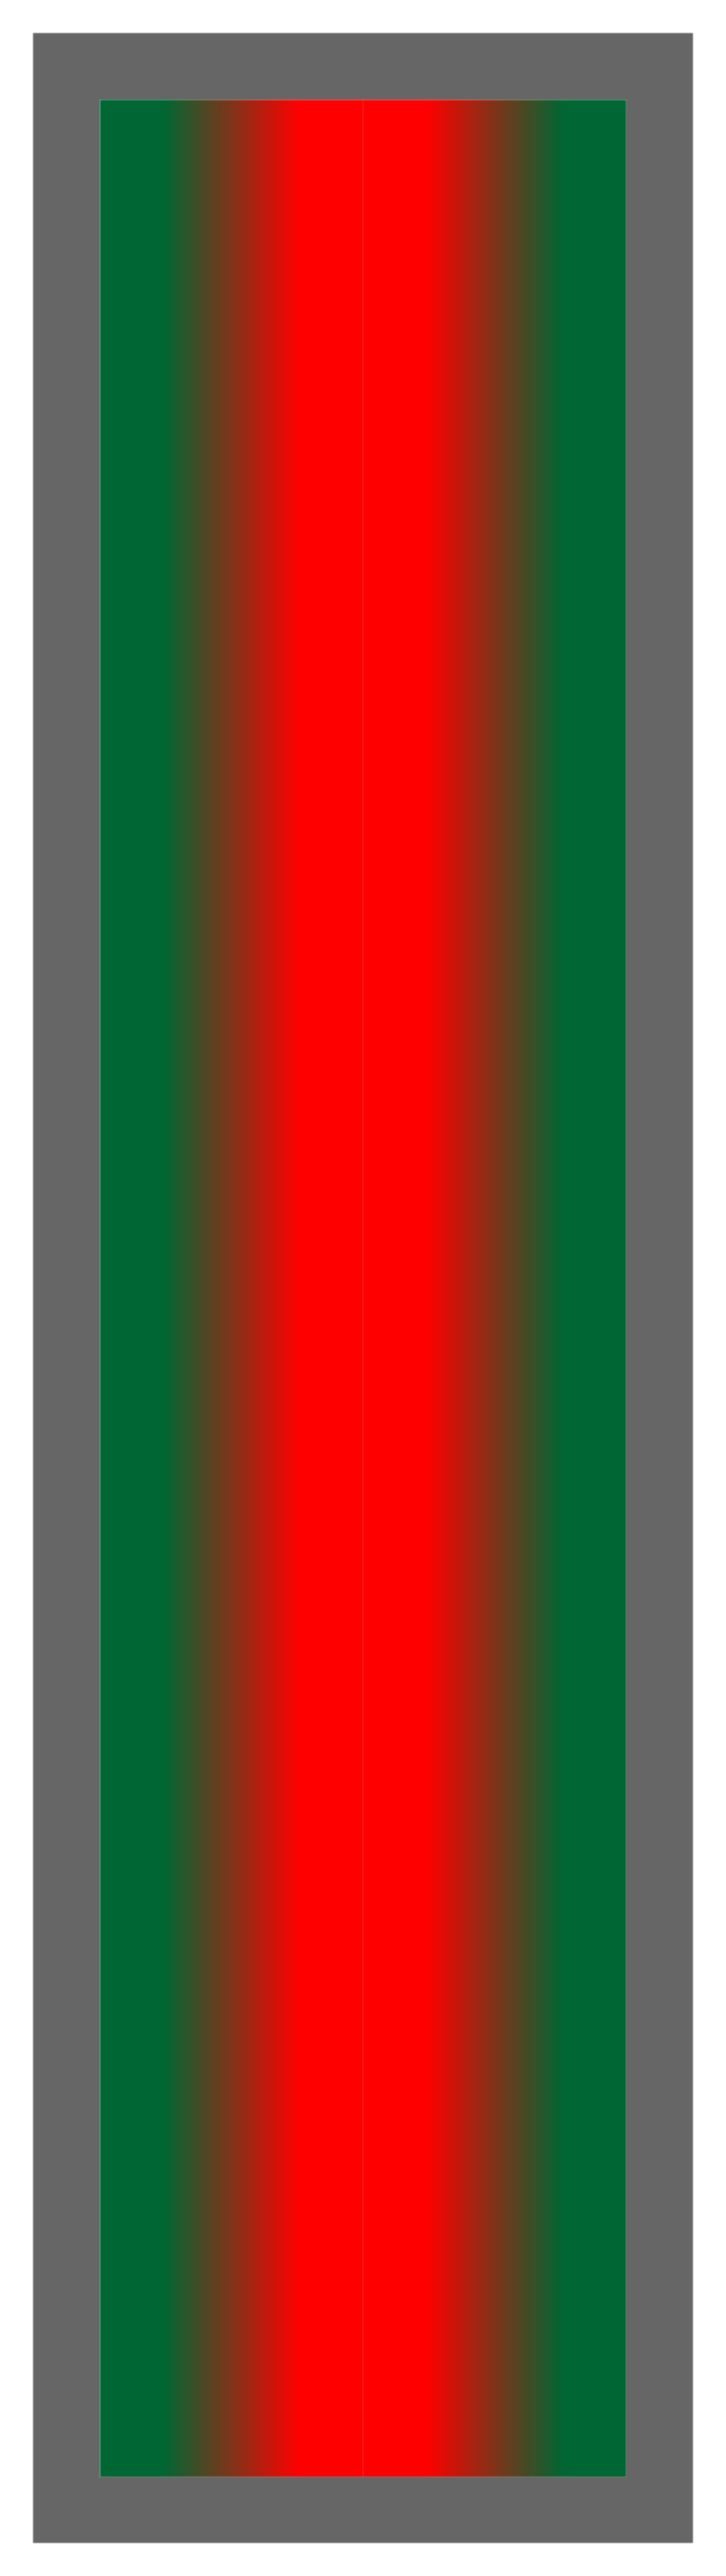 Forest Green-Red-Forest Green Ombre Stripe